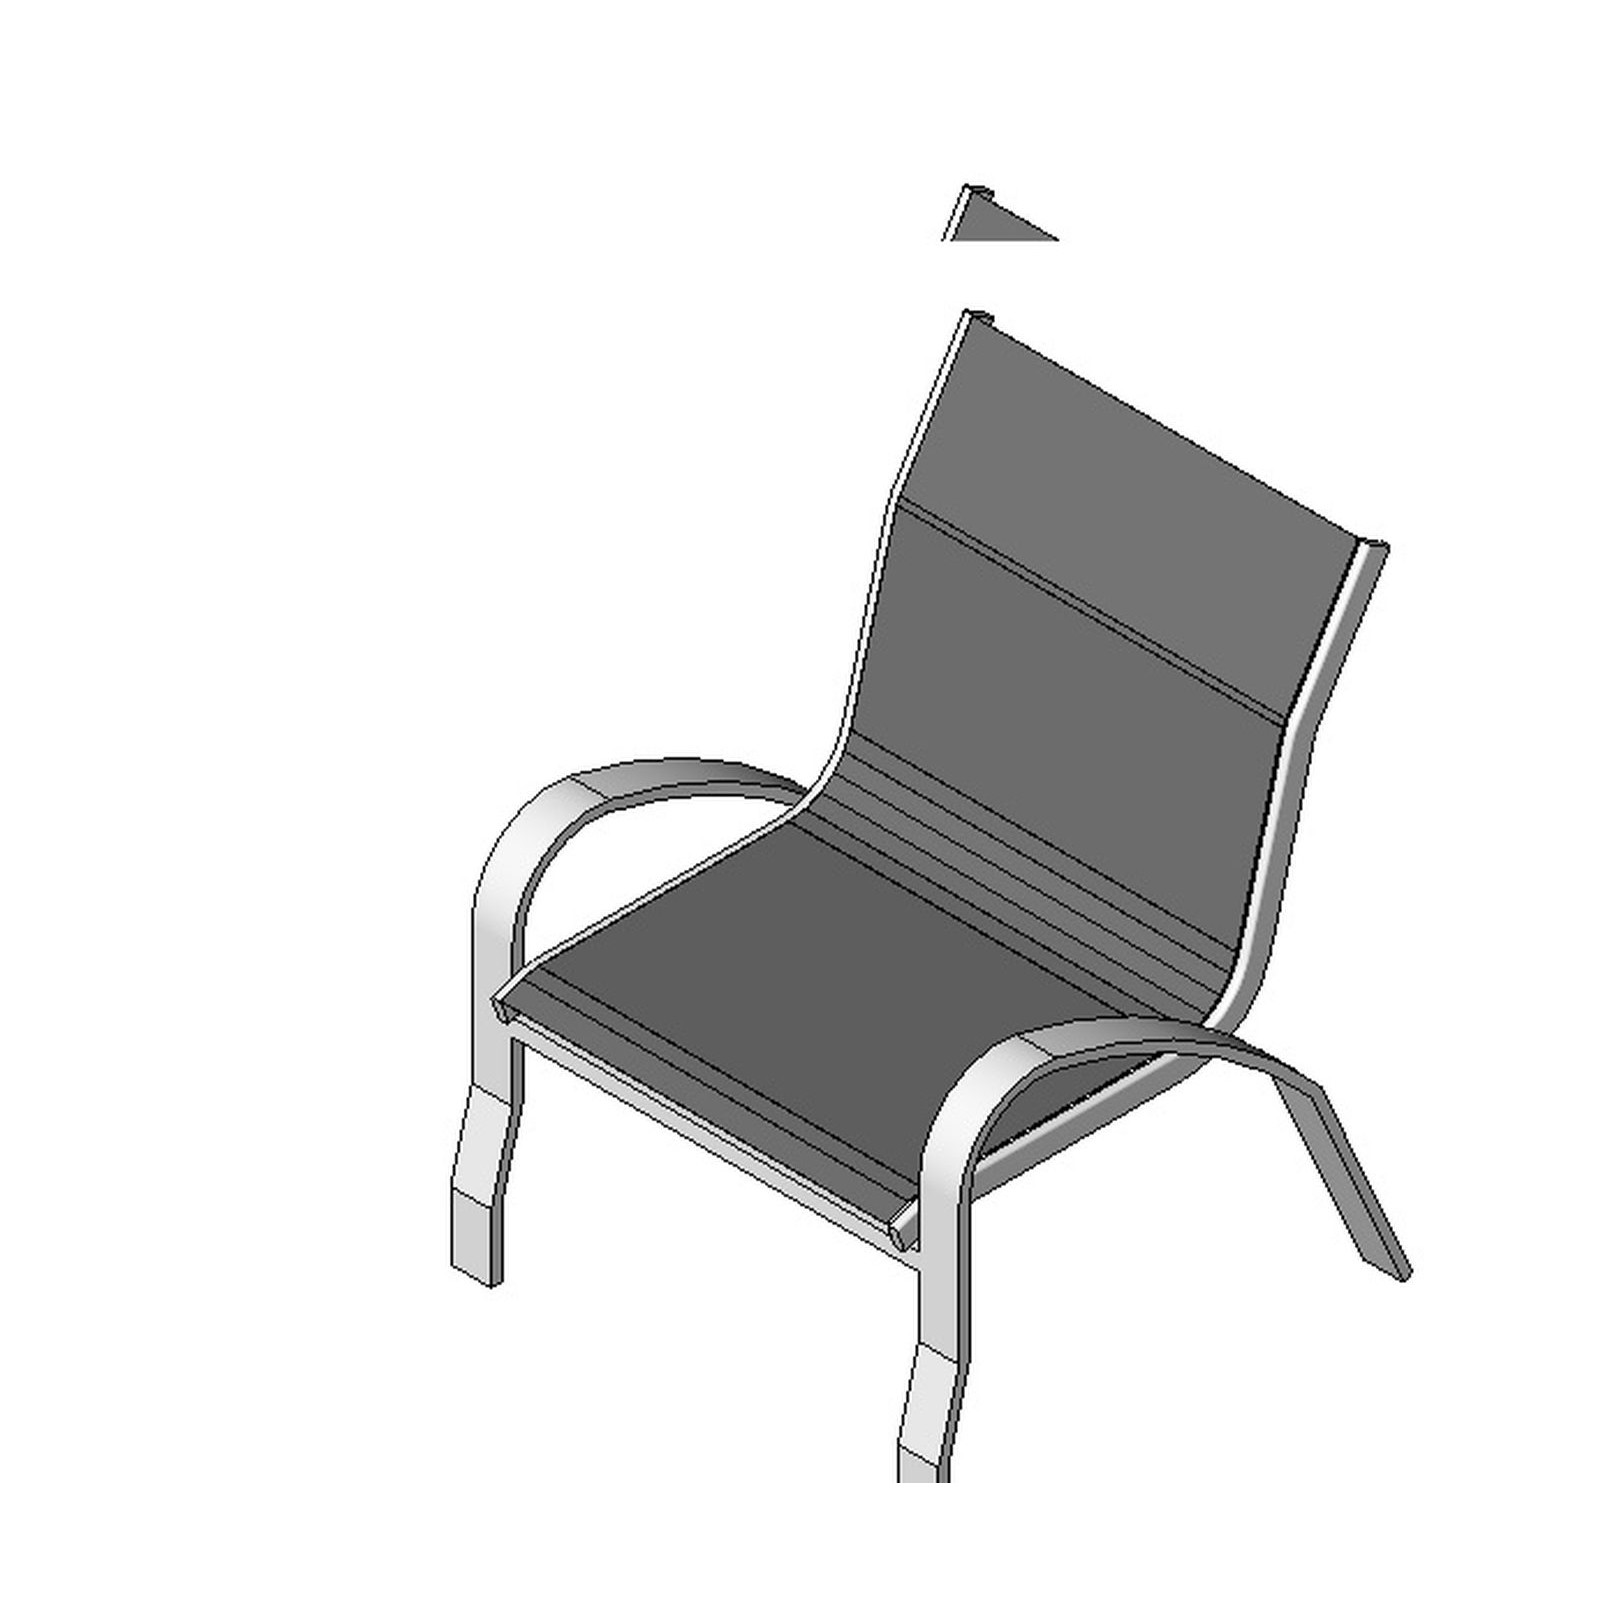 Outdoor chair type 2 design content for Outdoor furniture revit